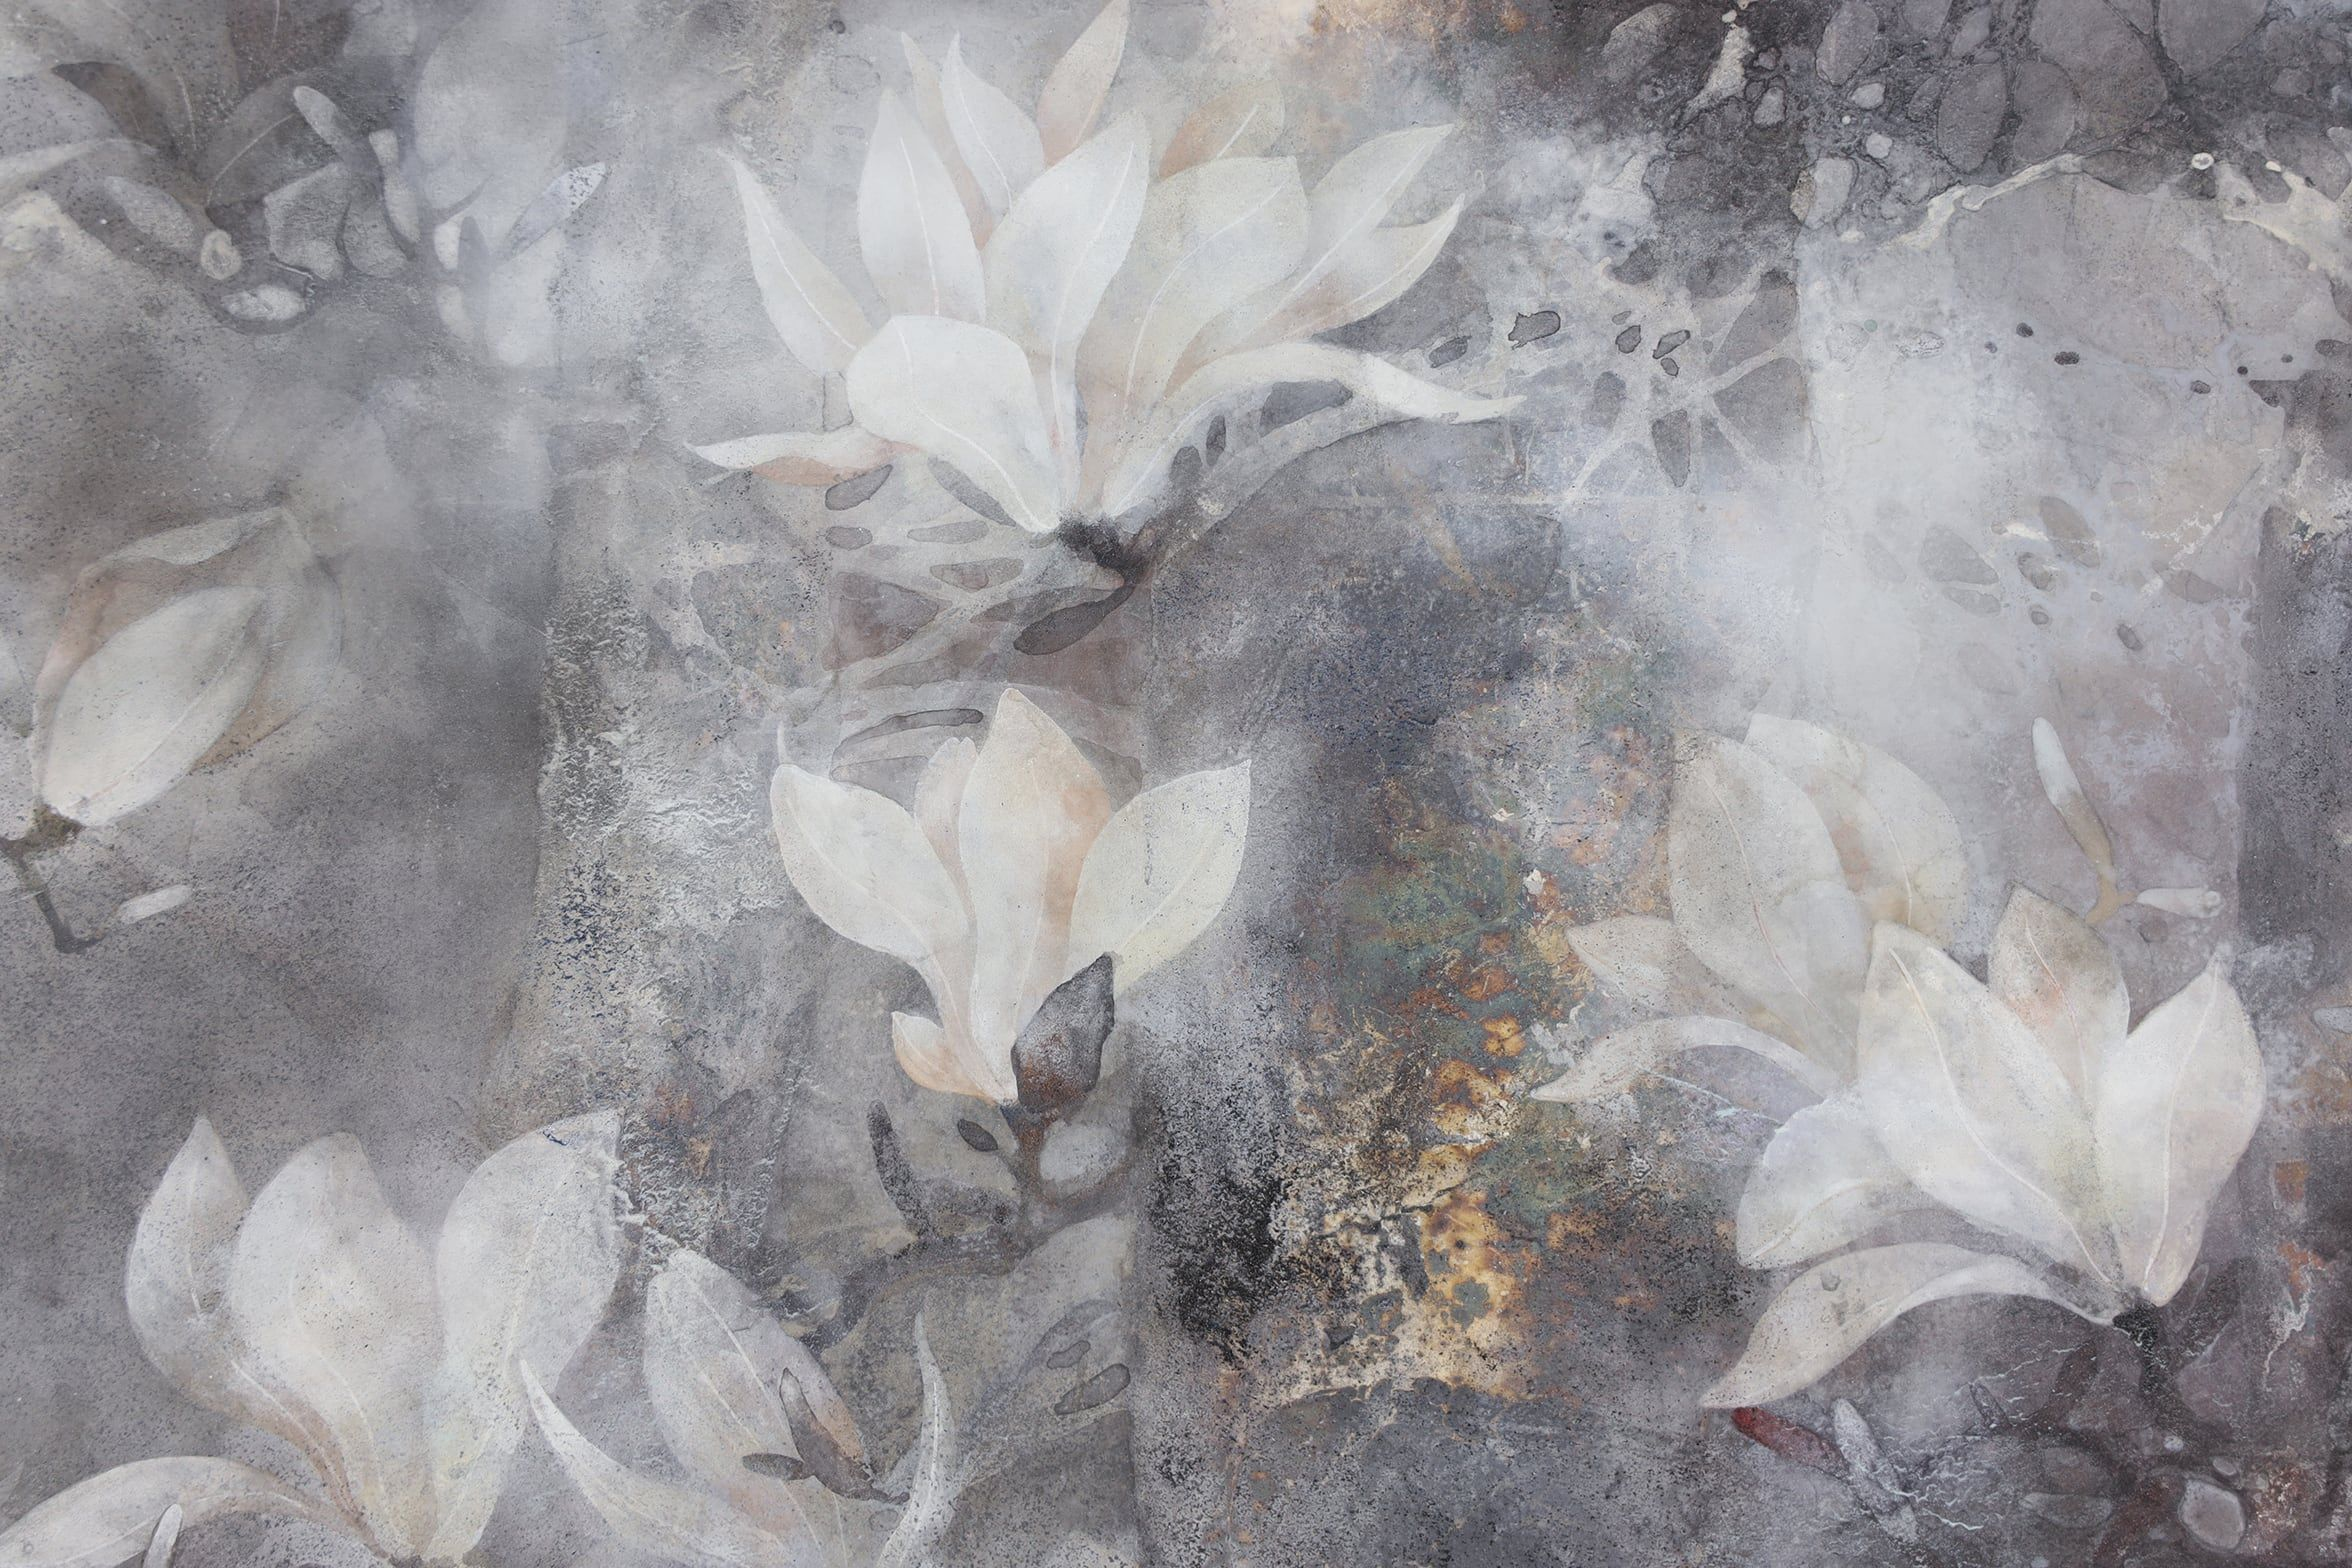 Temps,Chen Yiching,Peinture contemporaine, detail 3